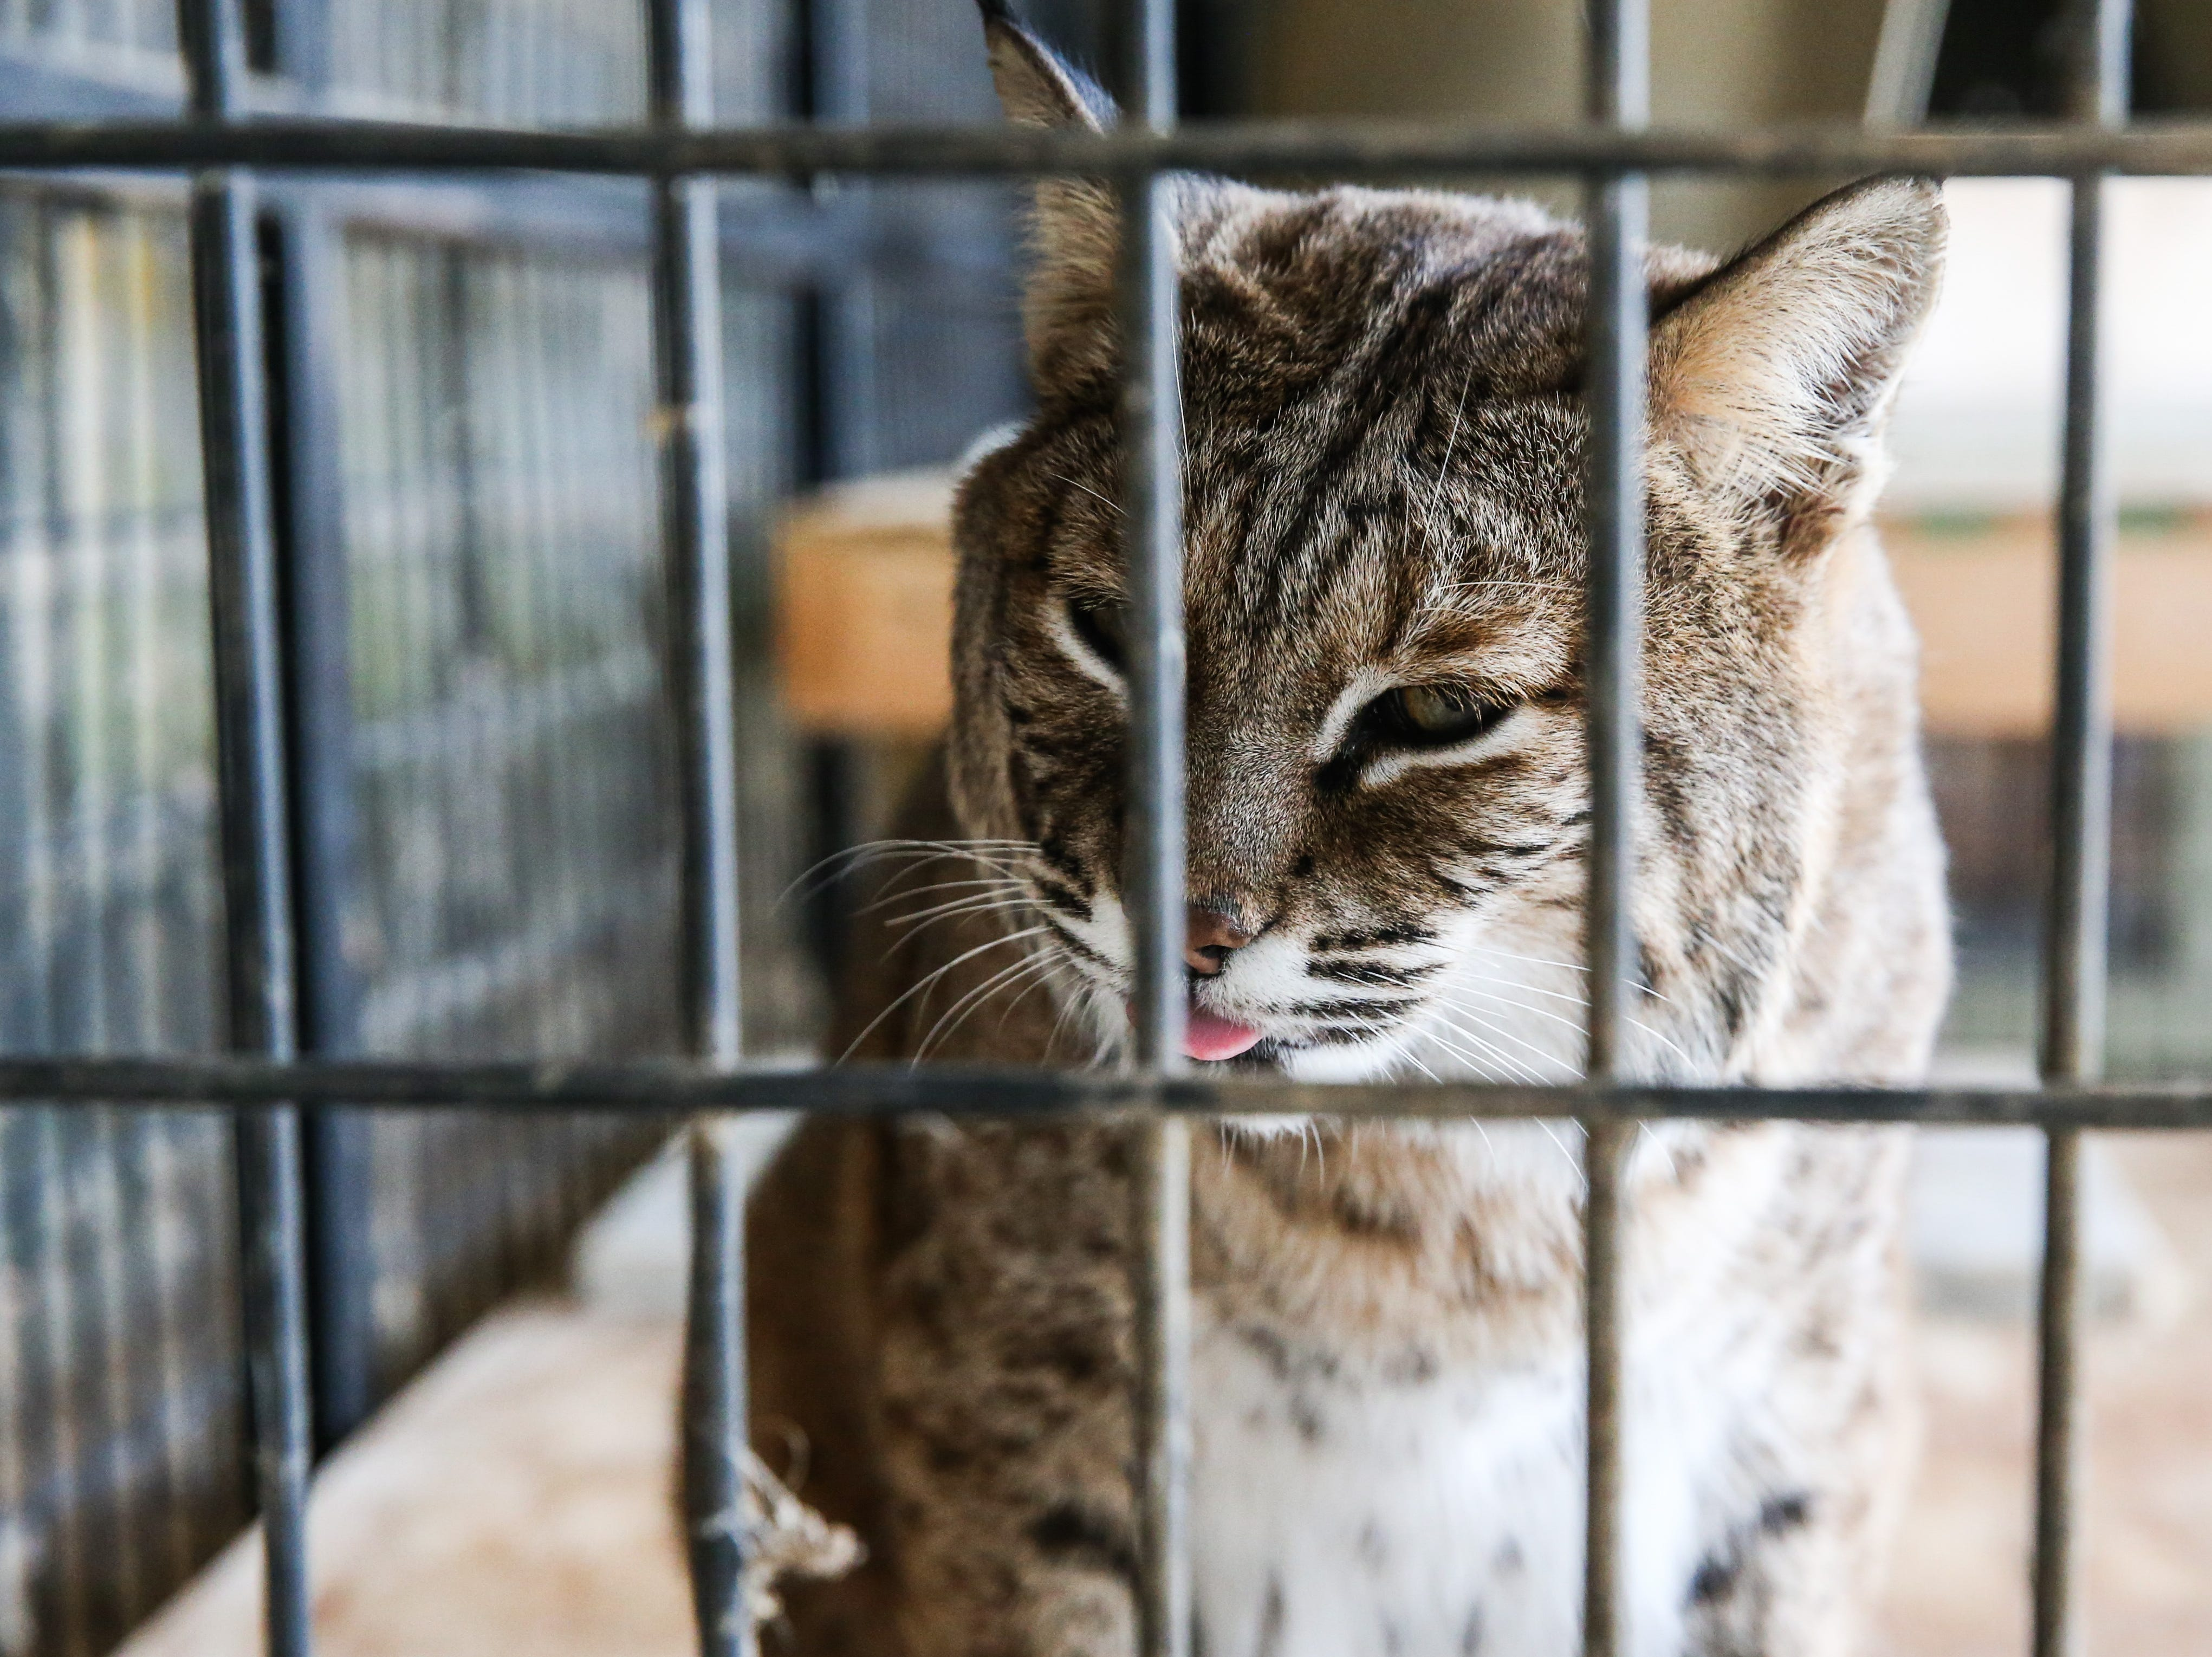 Simba and Nala, are sibling bobcats. Simba had an ear infection that left his ear damaged so he is easy to tell apart from his sister. They were kept as pets for a while before given to the center. They like to eat ground turkey and rats and deer.